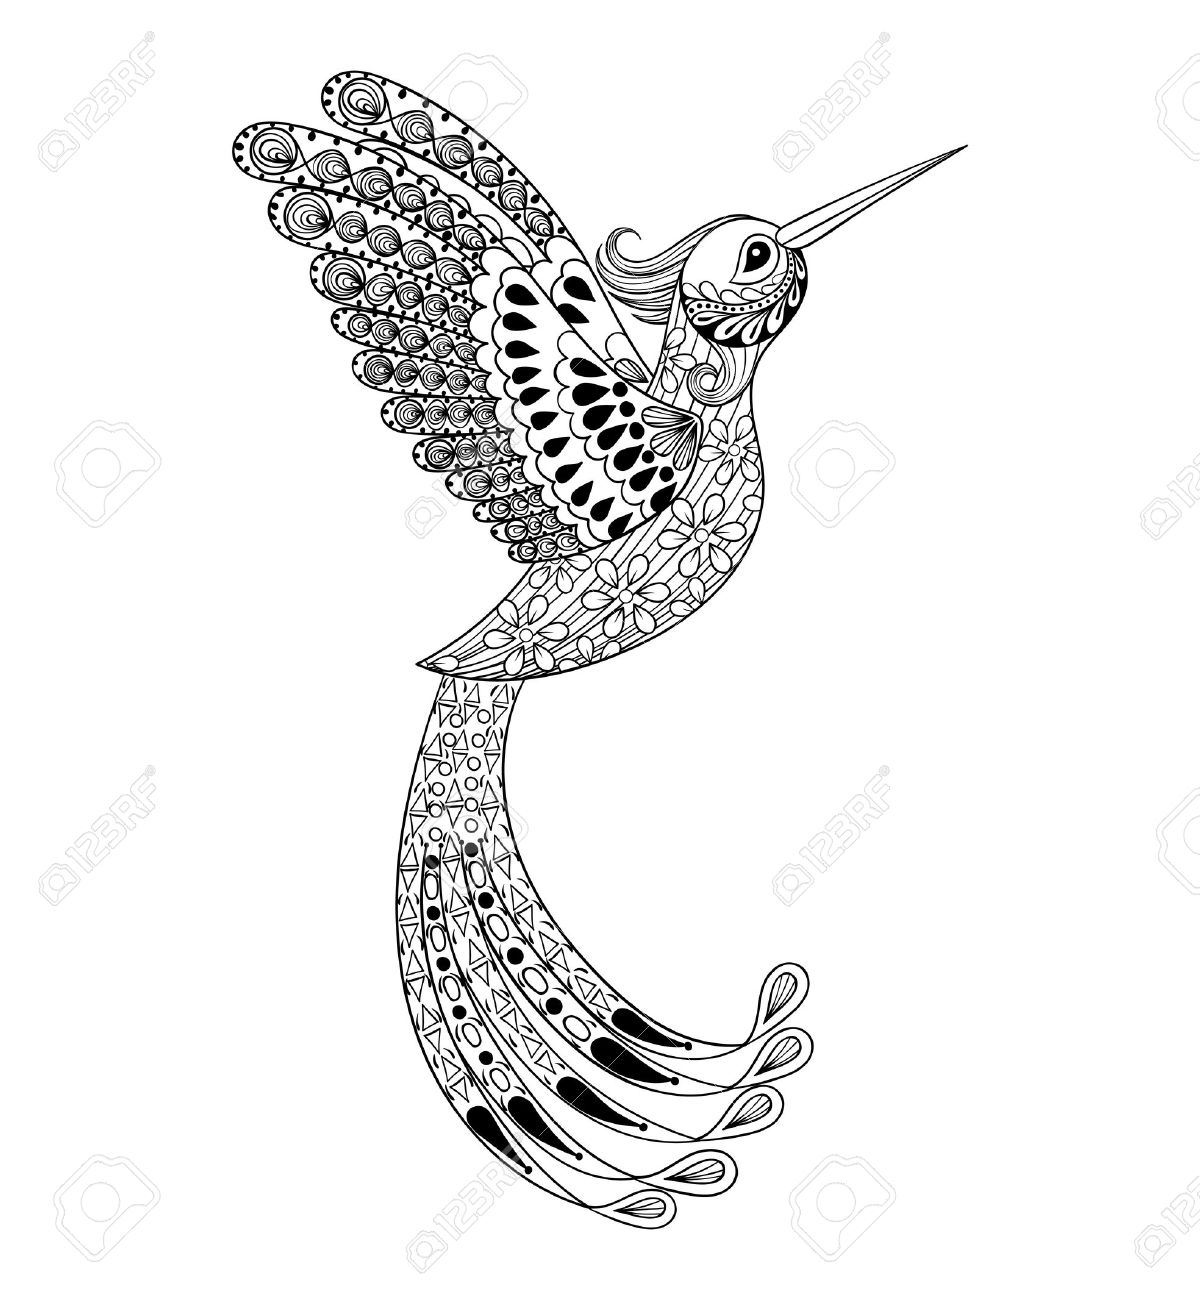 Hummingbird Animal Coloring Pages. Zentangle hand drawn artistically Hummingbird  flying bird tribal totem for adult Coloring Page or tattoo Hand Drawn Artistically Flying Bird Tribal